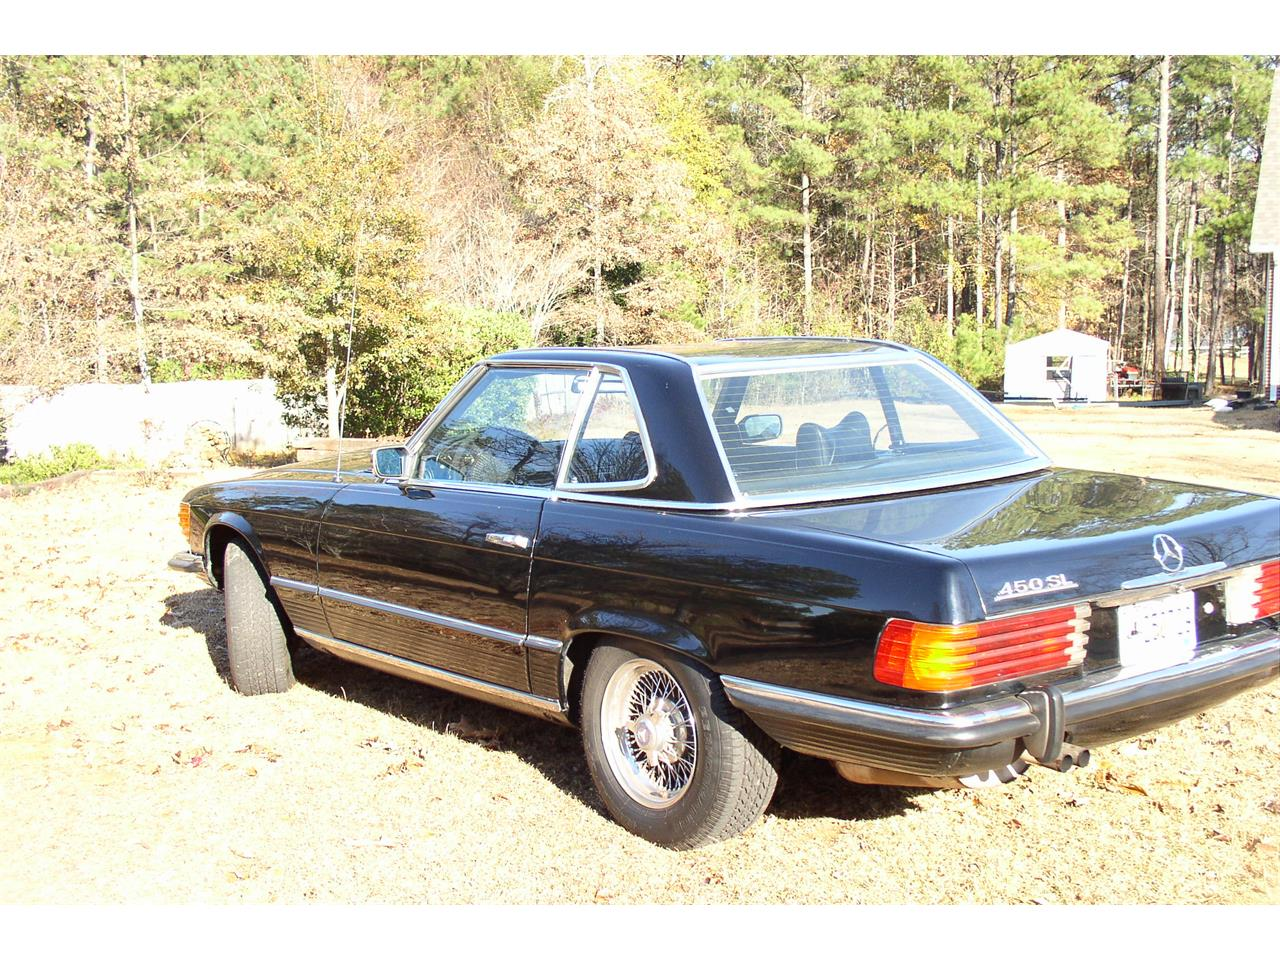 Large Picture of '73 Mercedes-Benz 450SL located in Georgia - $8,500.00 Offered by a Private Seller - K783